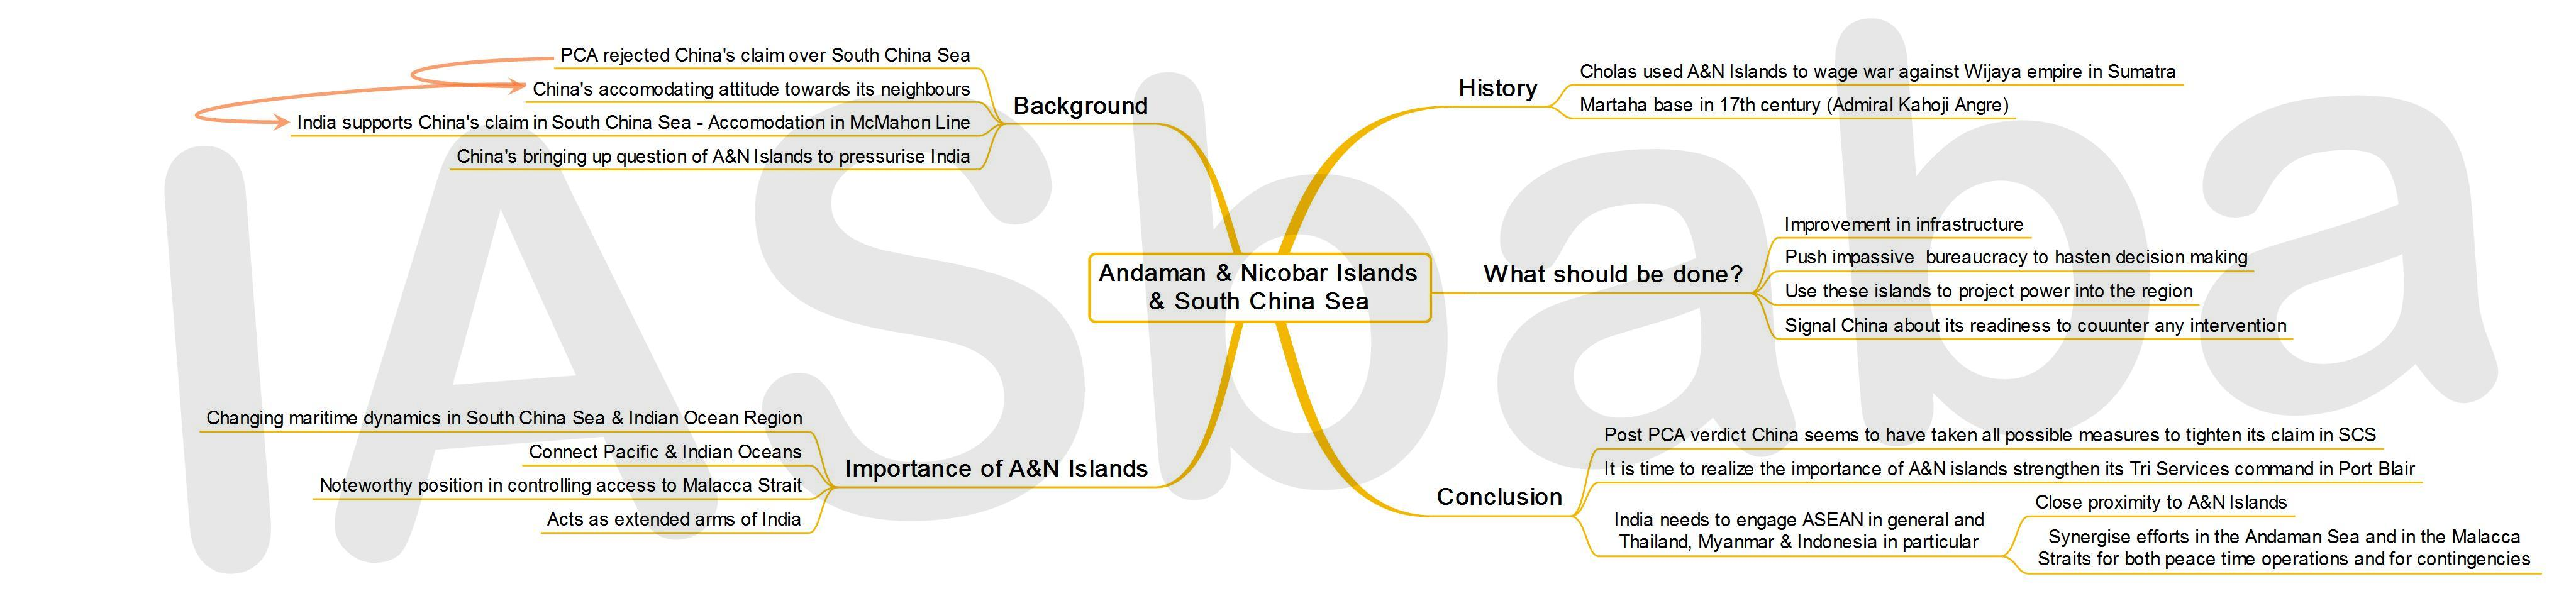 IASbaba's MINDMAP : Issue - Andaman & Nicobar Islands and South China Sea